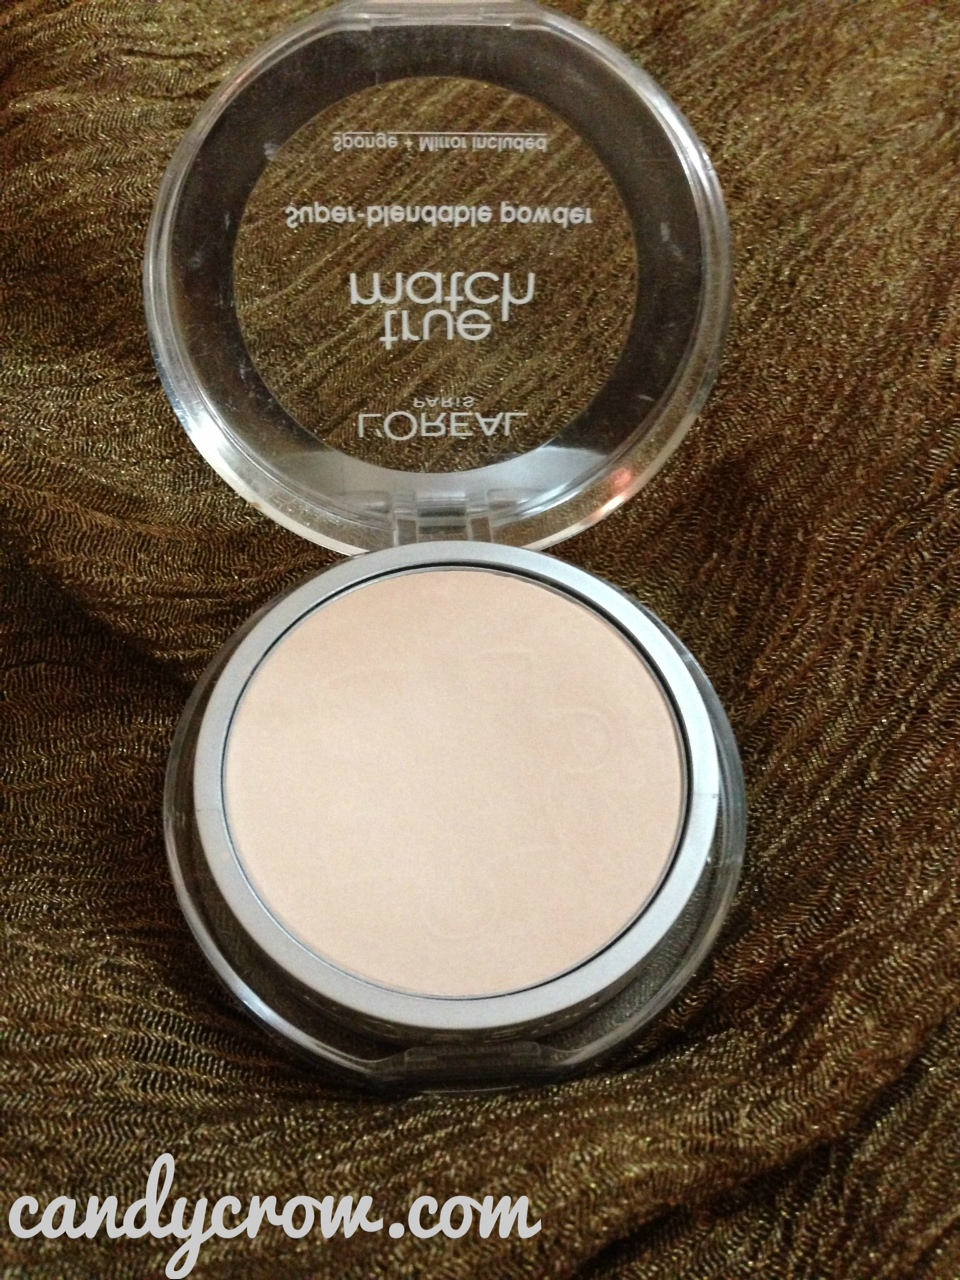 Review | L'oreal True Match Super Blendable Powder